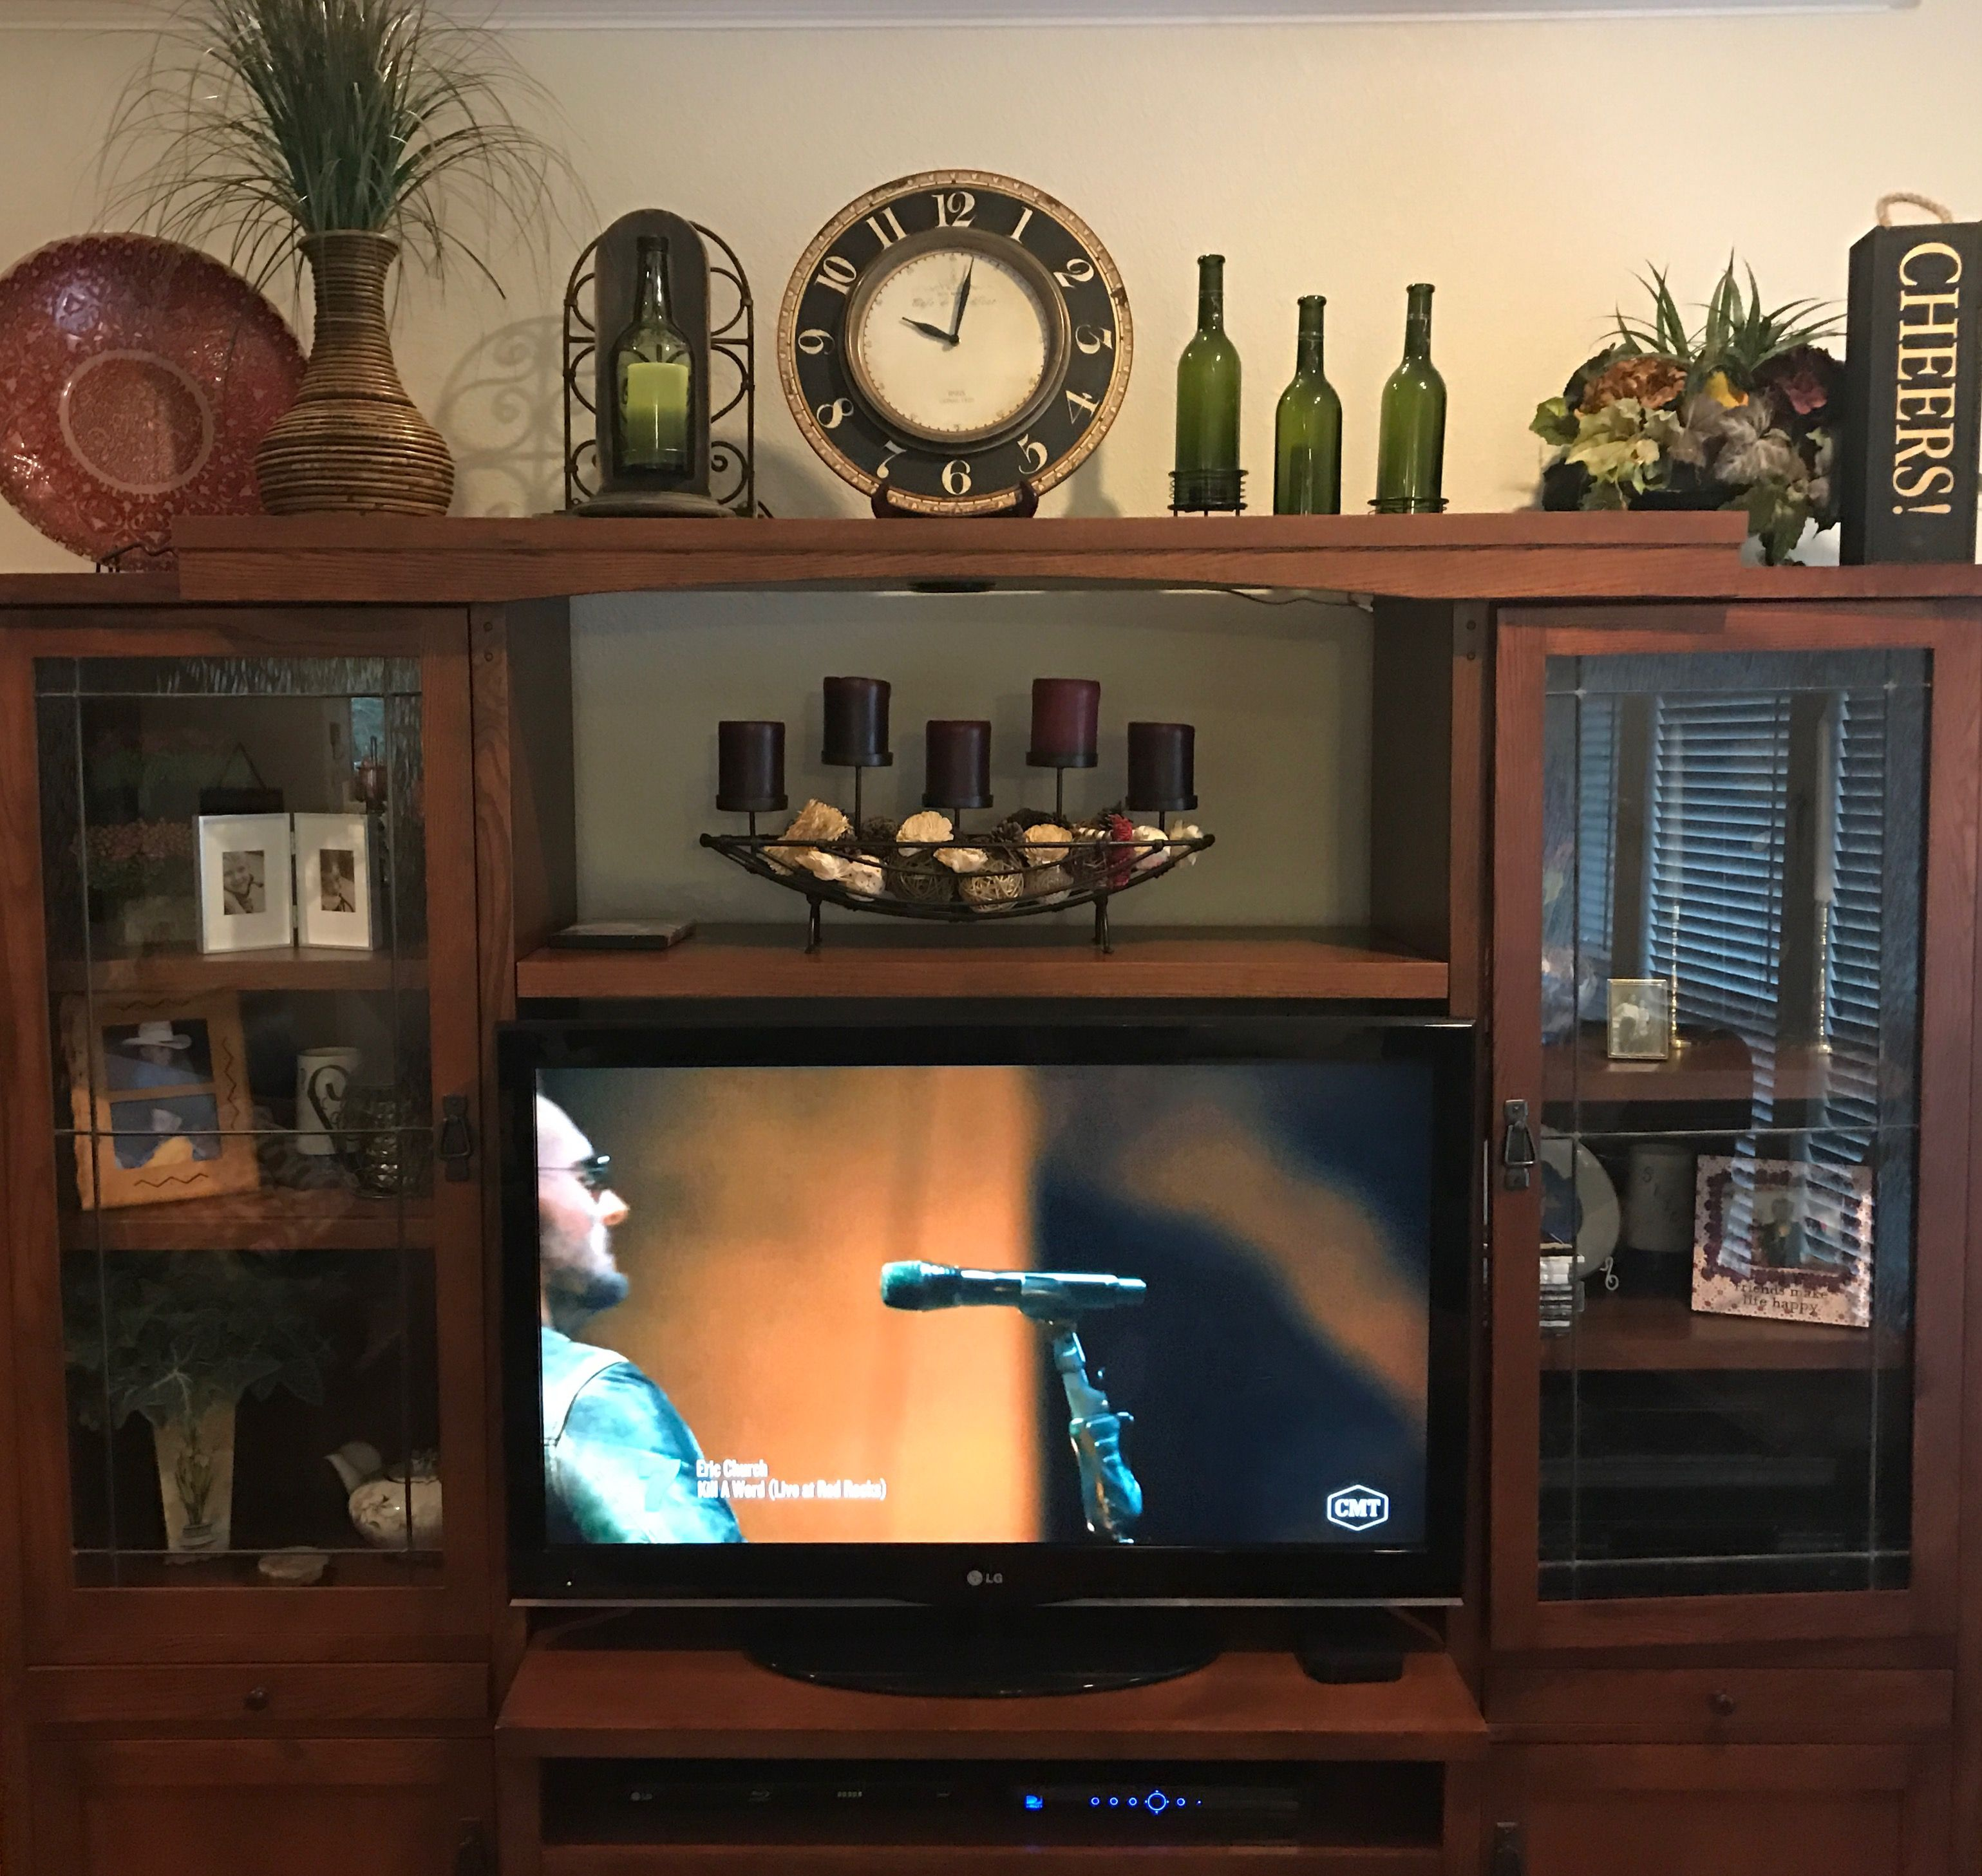 Top of entertainment center (With images) | Home ...